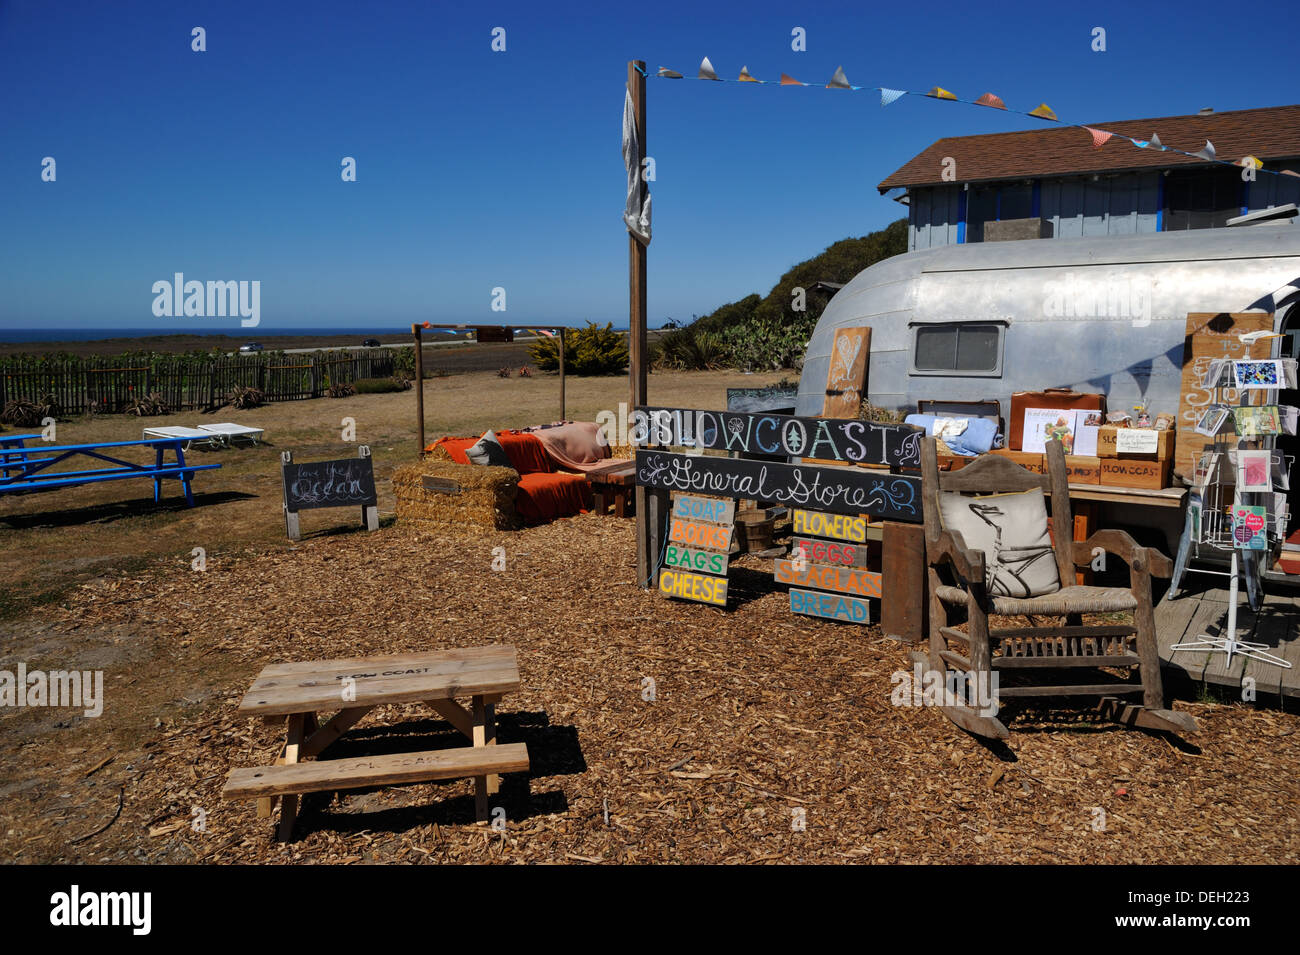 Slowcoast Farm, Davenport CA - Stock Image